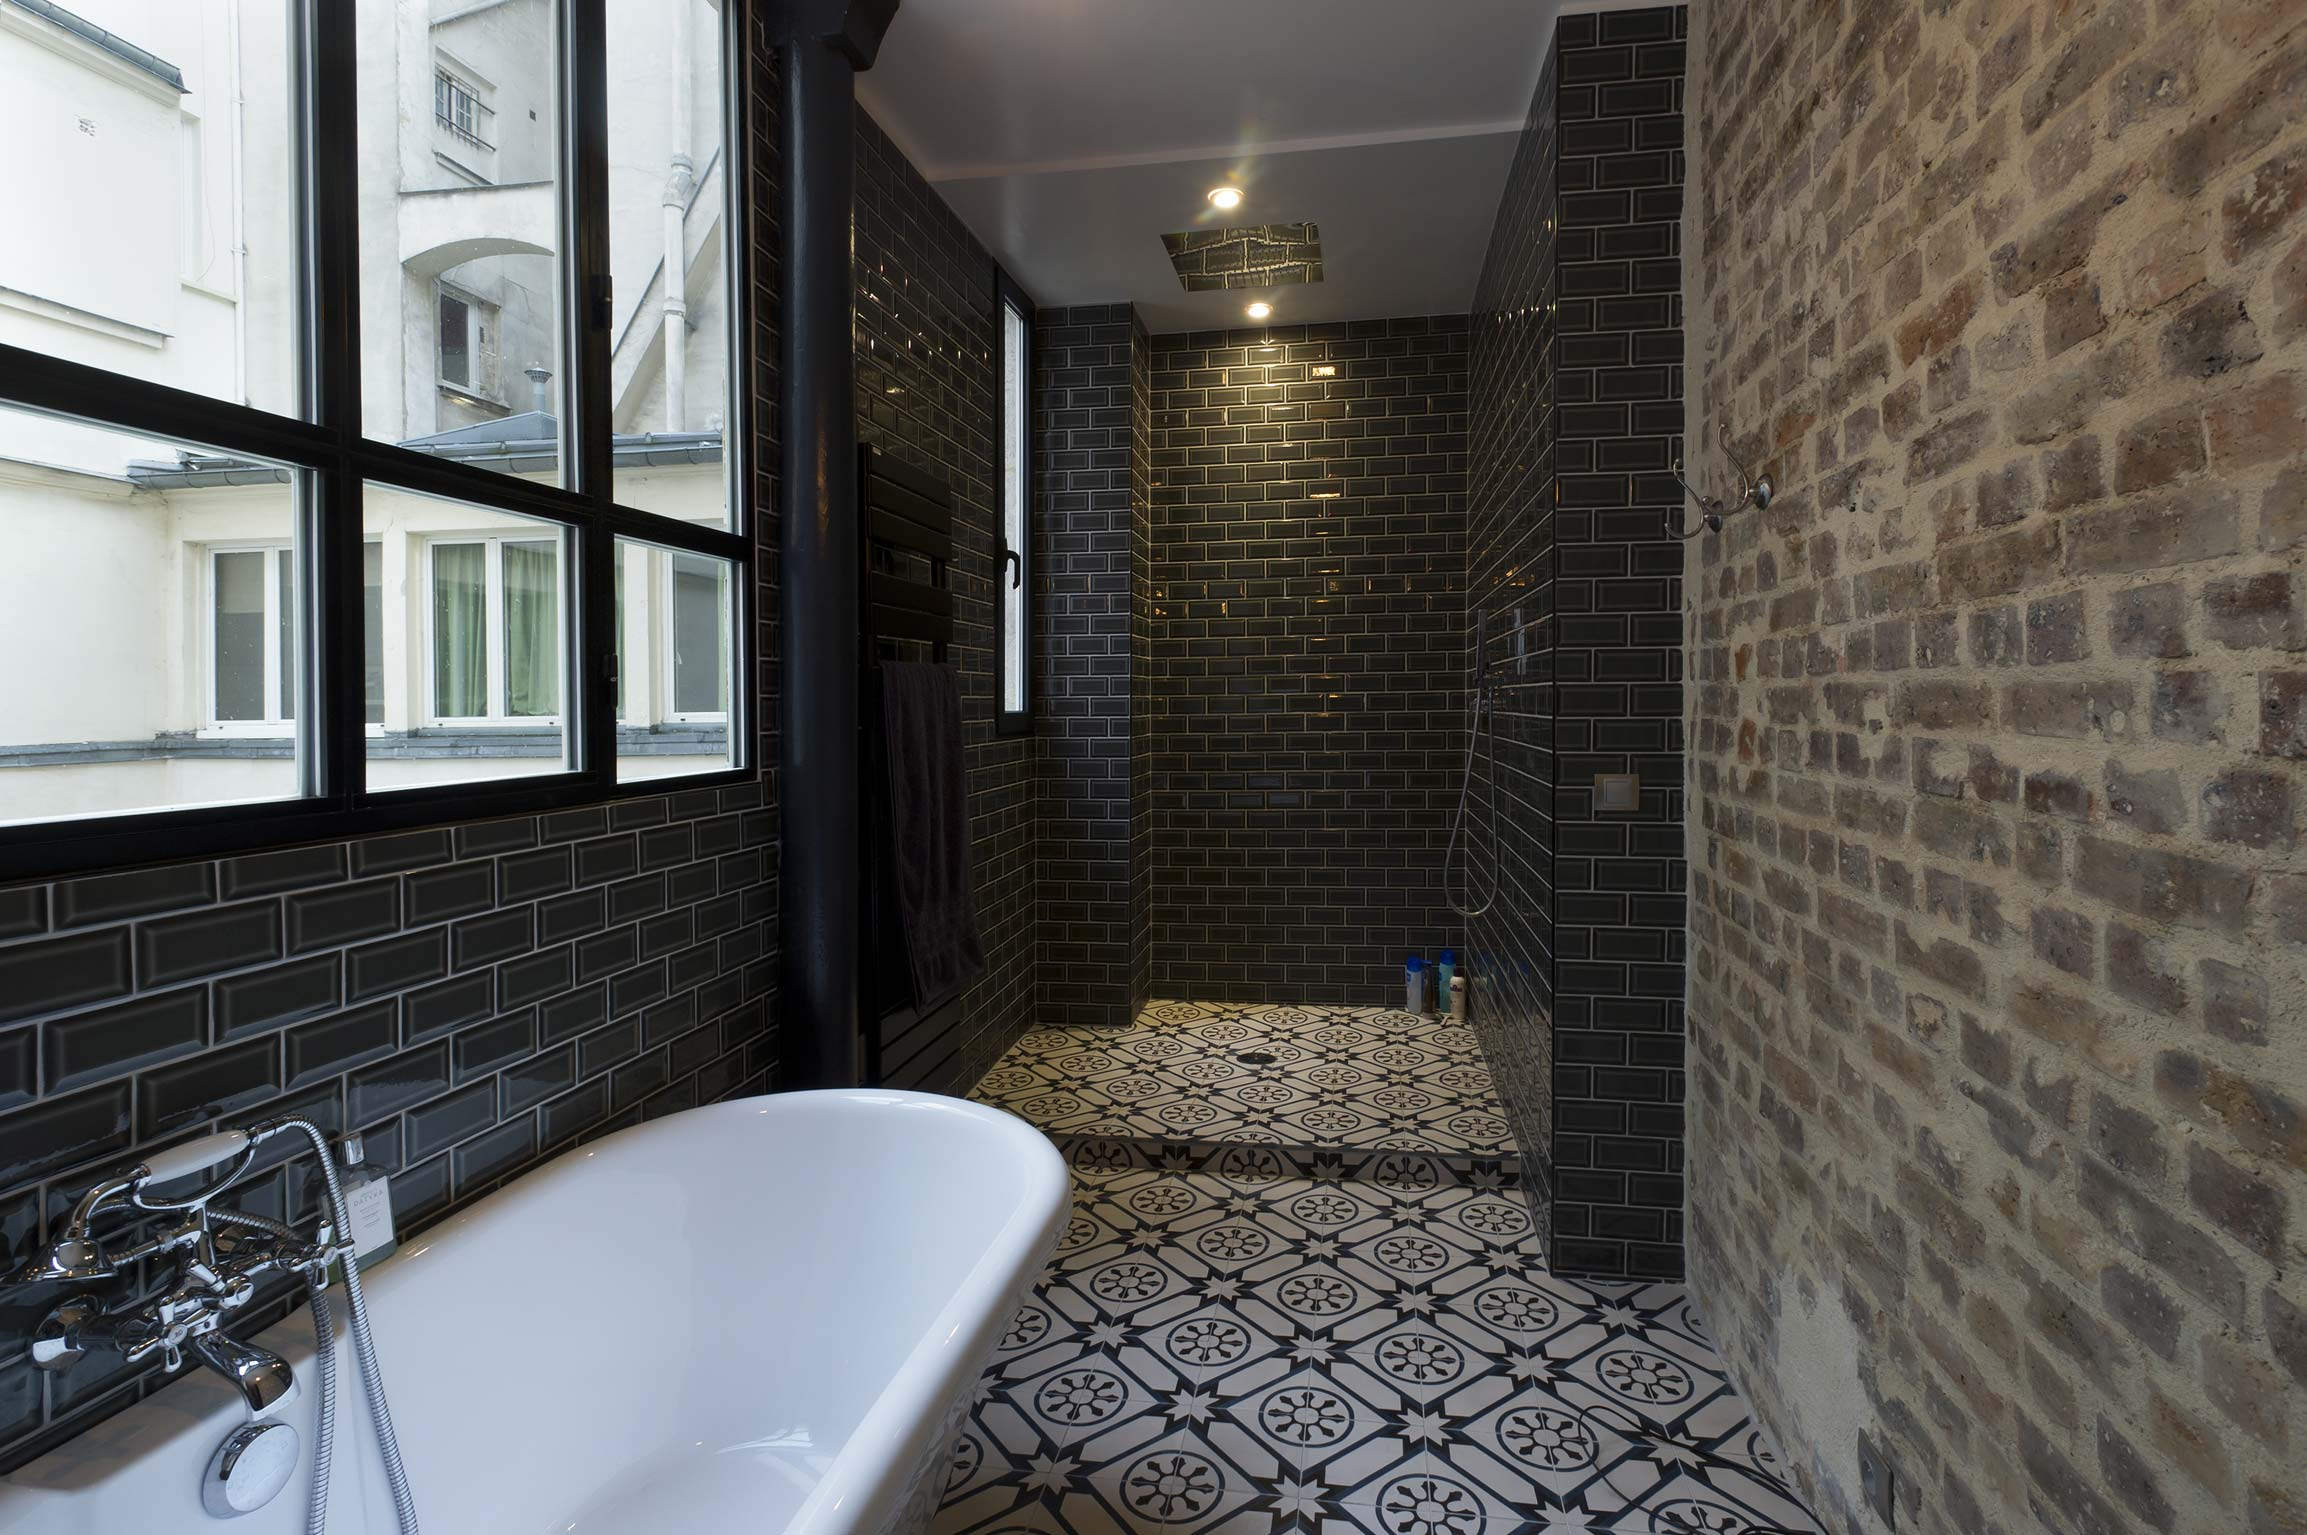 Salle de bain travertin et ardoise - Carreau de ciment paris ...